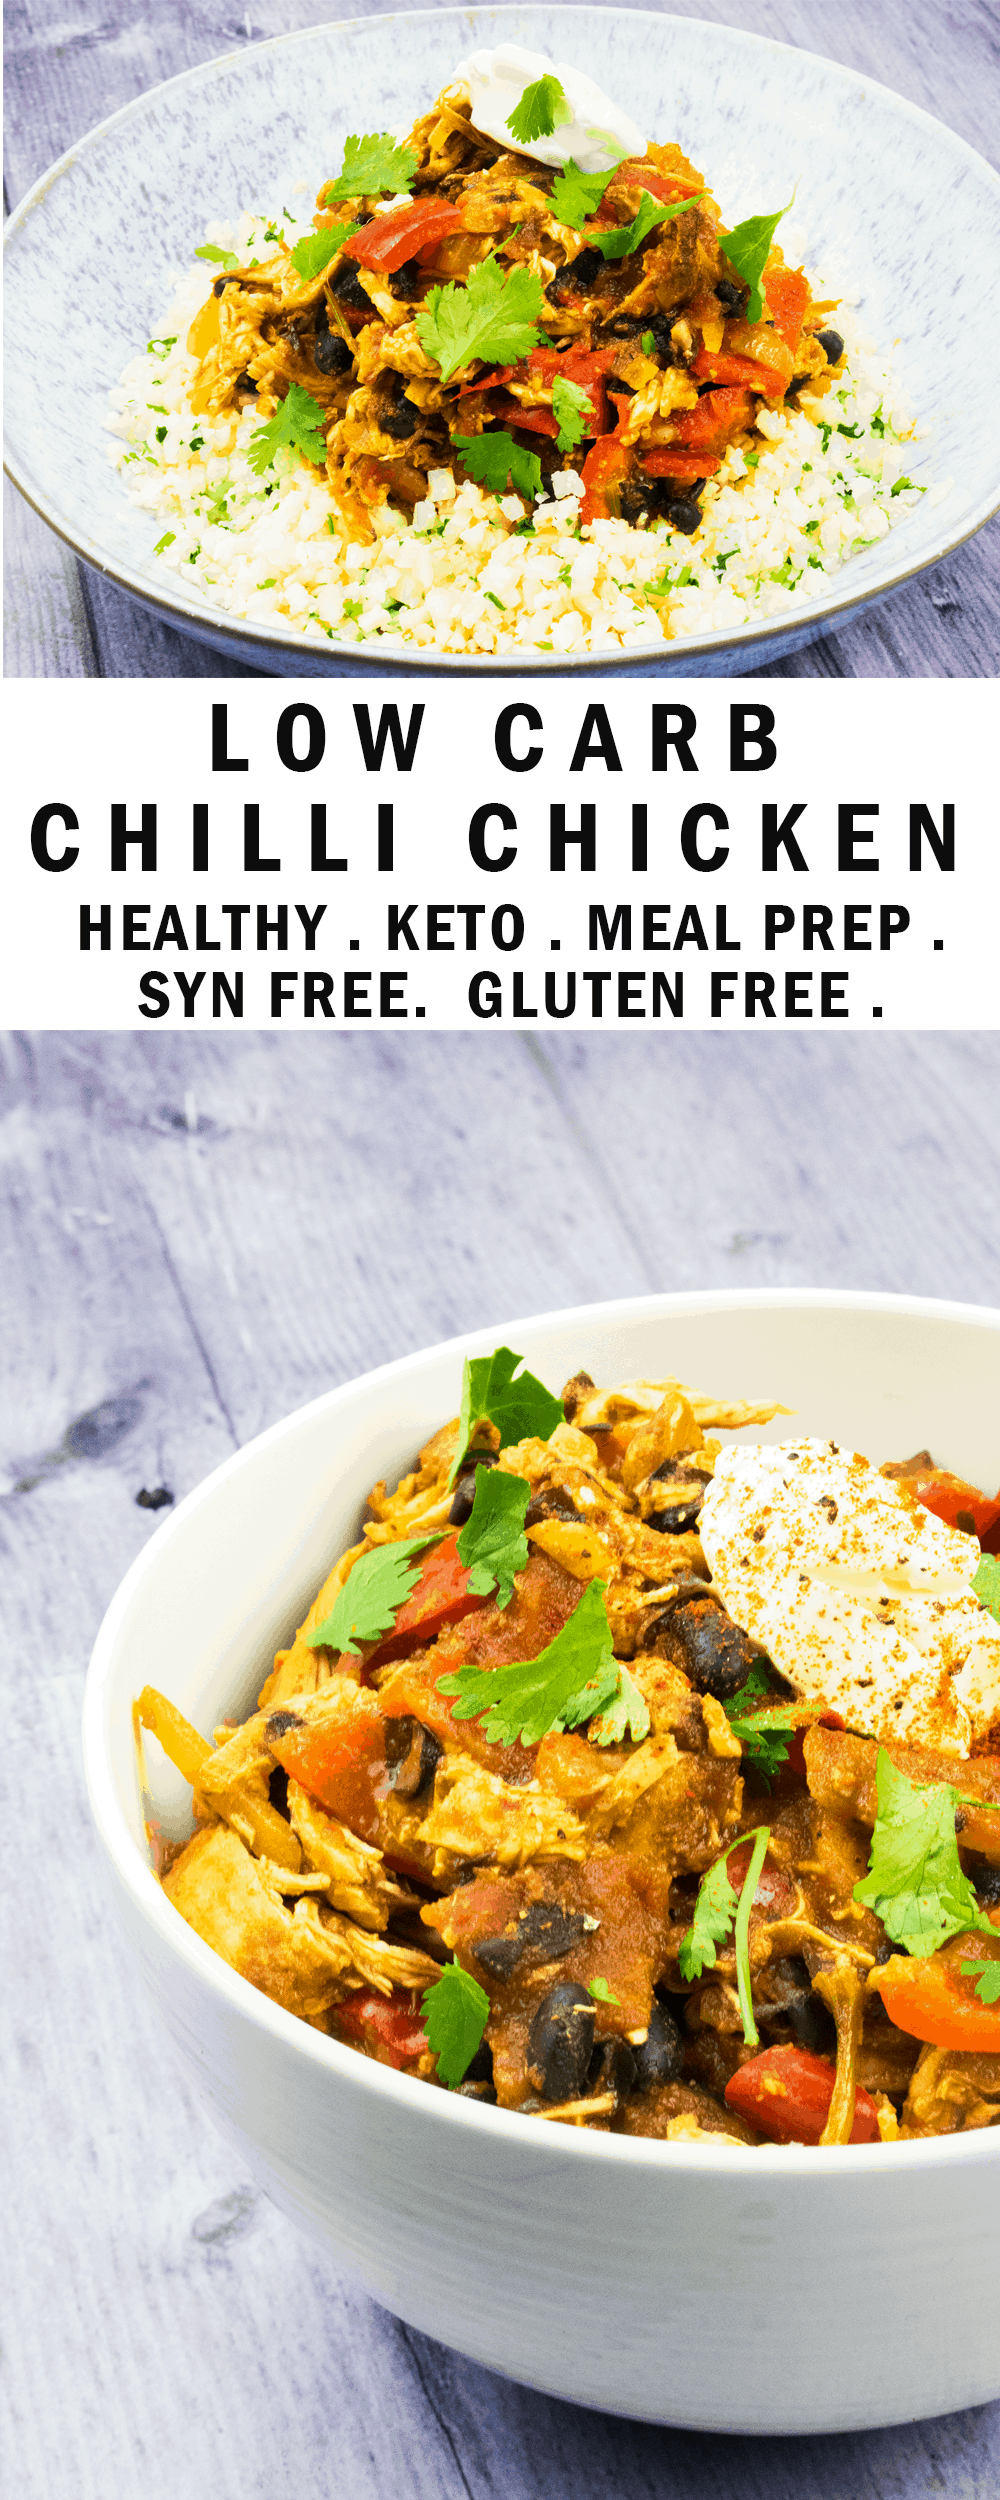 Easy Peasy Low Carb Chilli Chicken - Basement Bakehouse